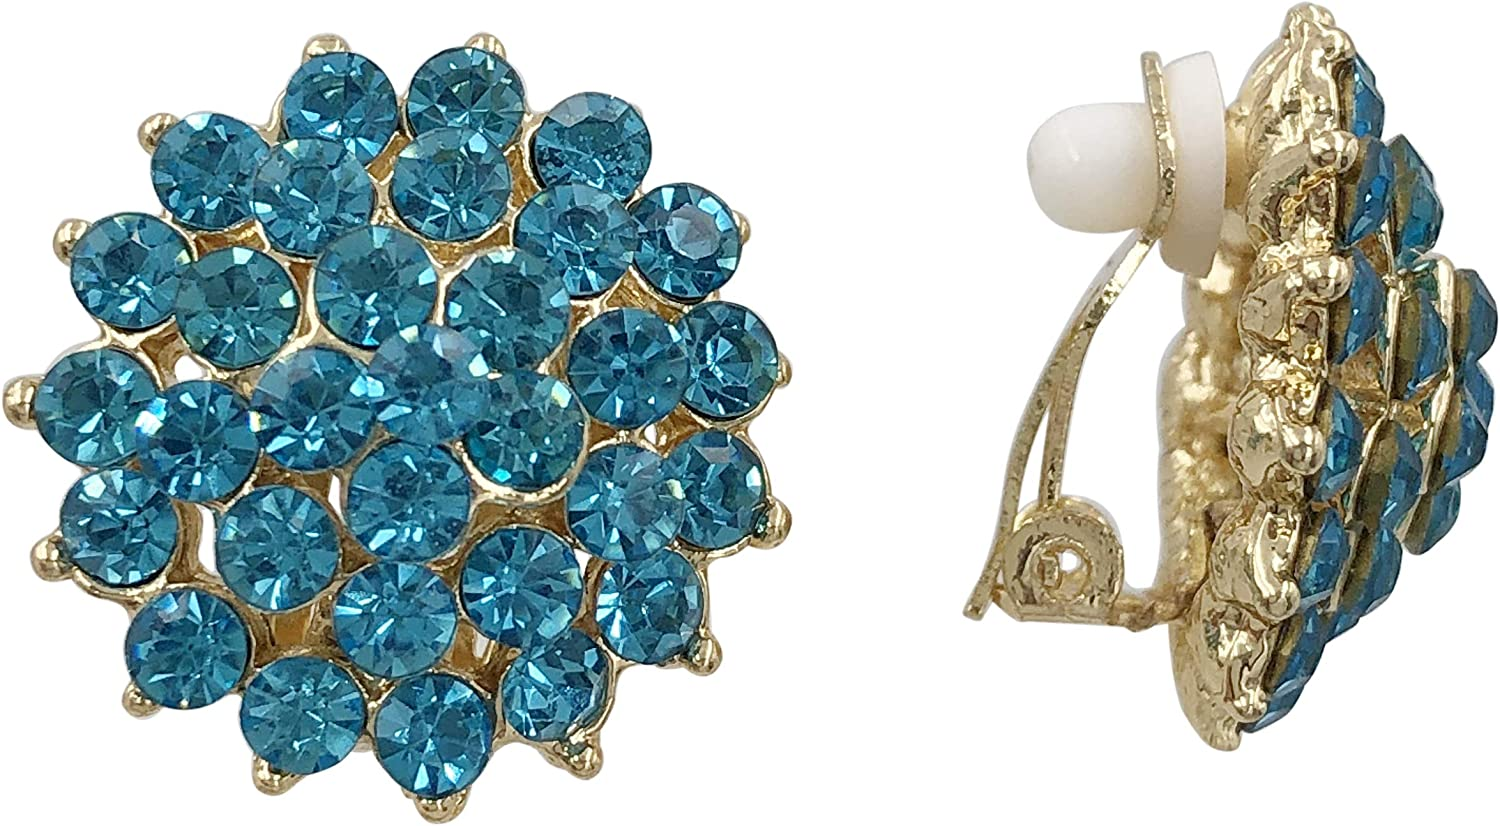 Round Rhinestone Dome Fancy Formal Prom Gold Tone Clip On Earrings - Assorted Colors